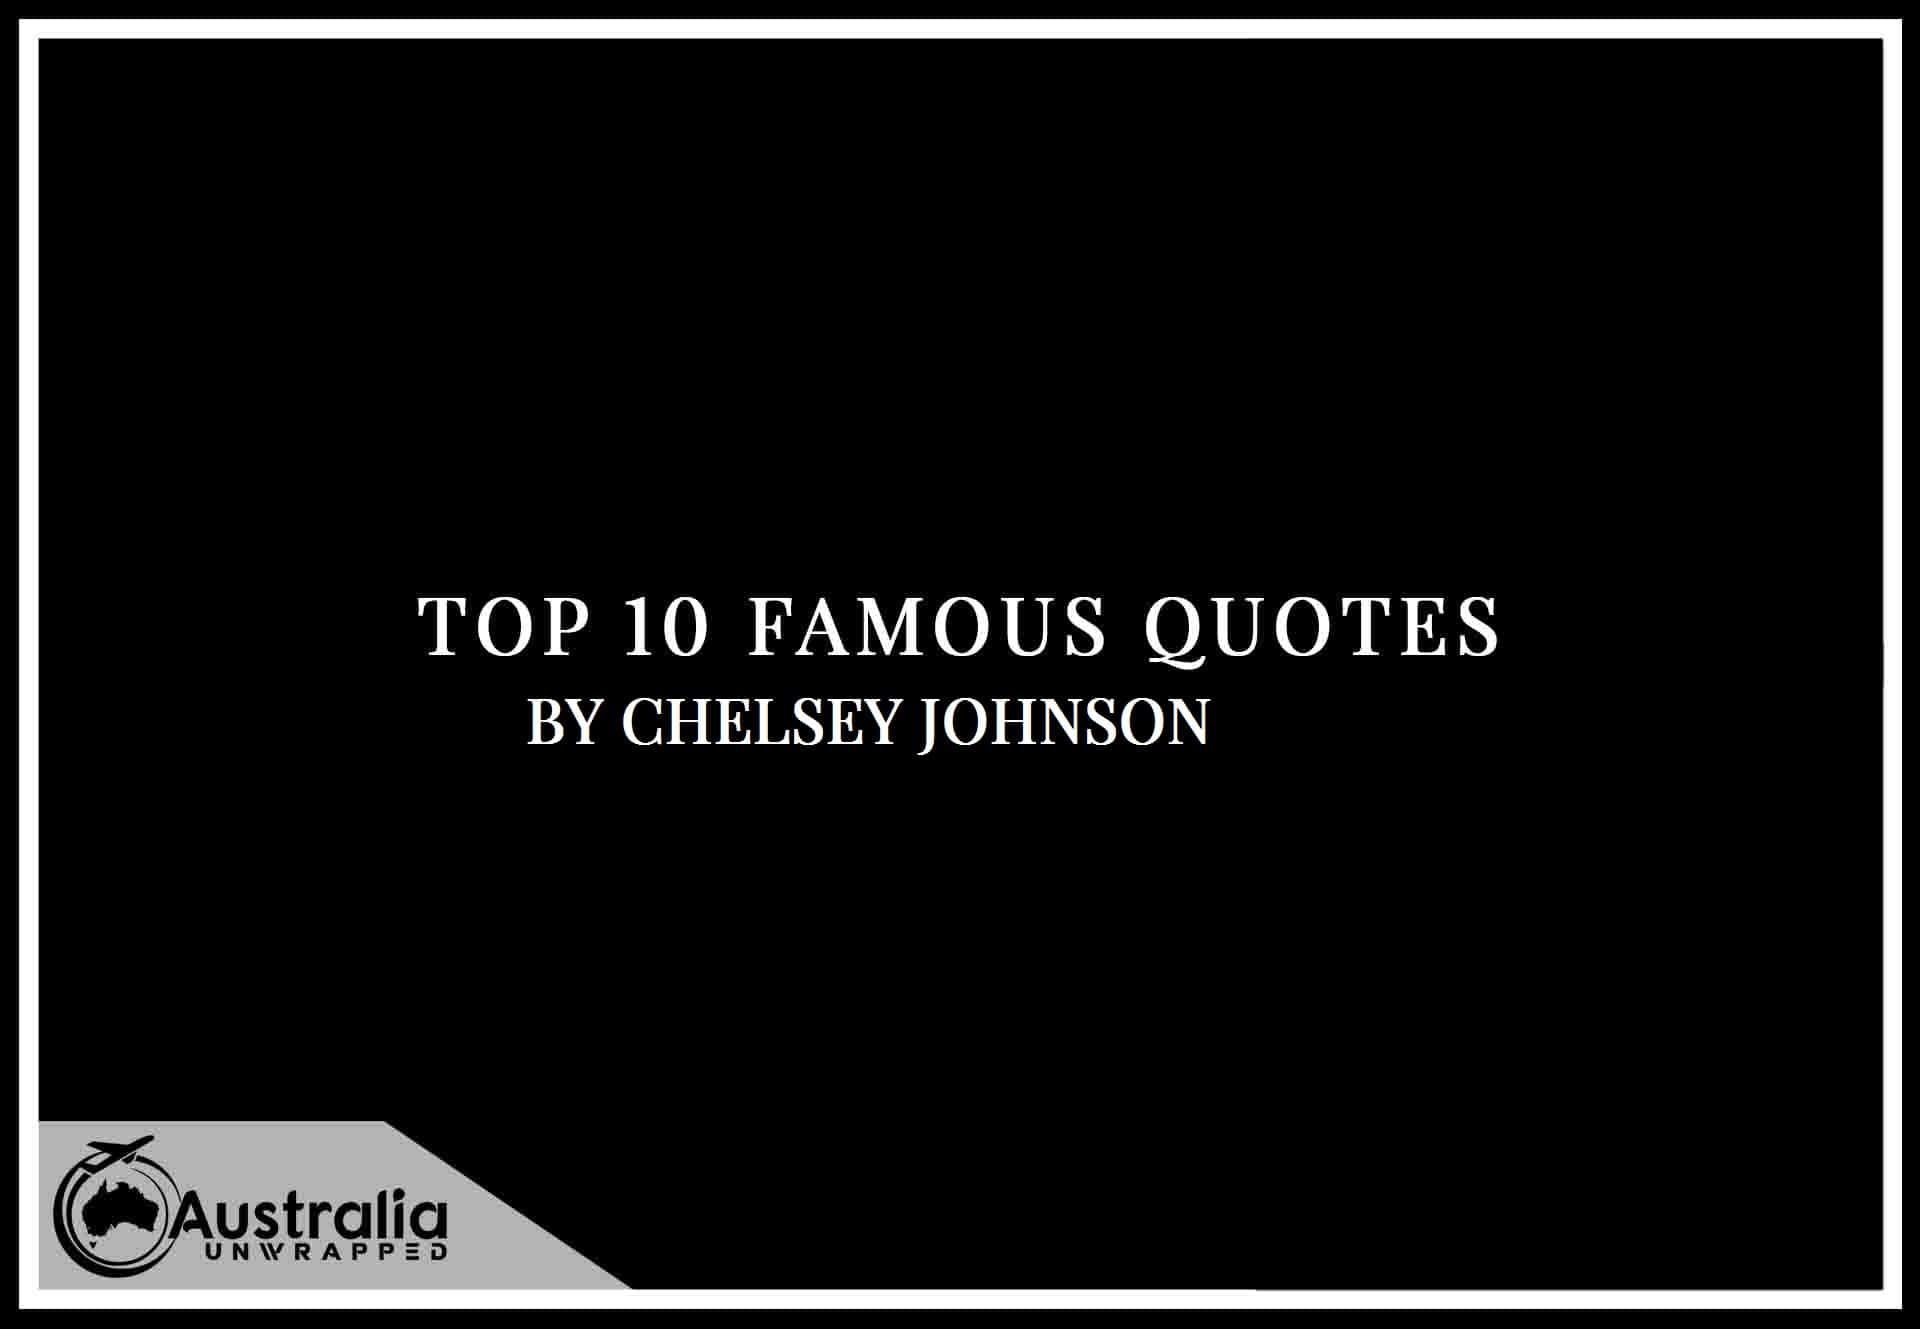 Chelsey Johnson's Top 10 Popular and Famous Quotes